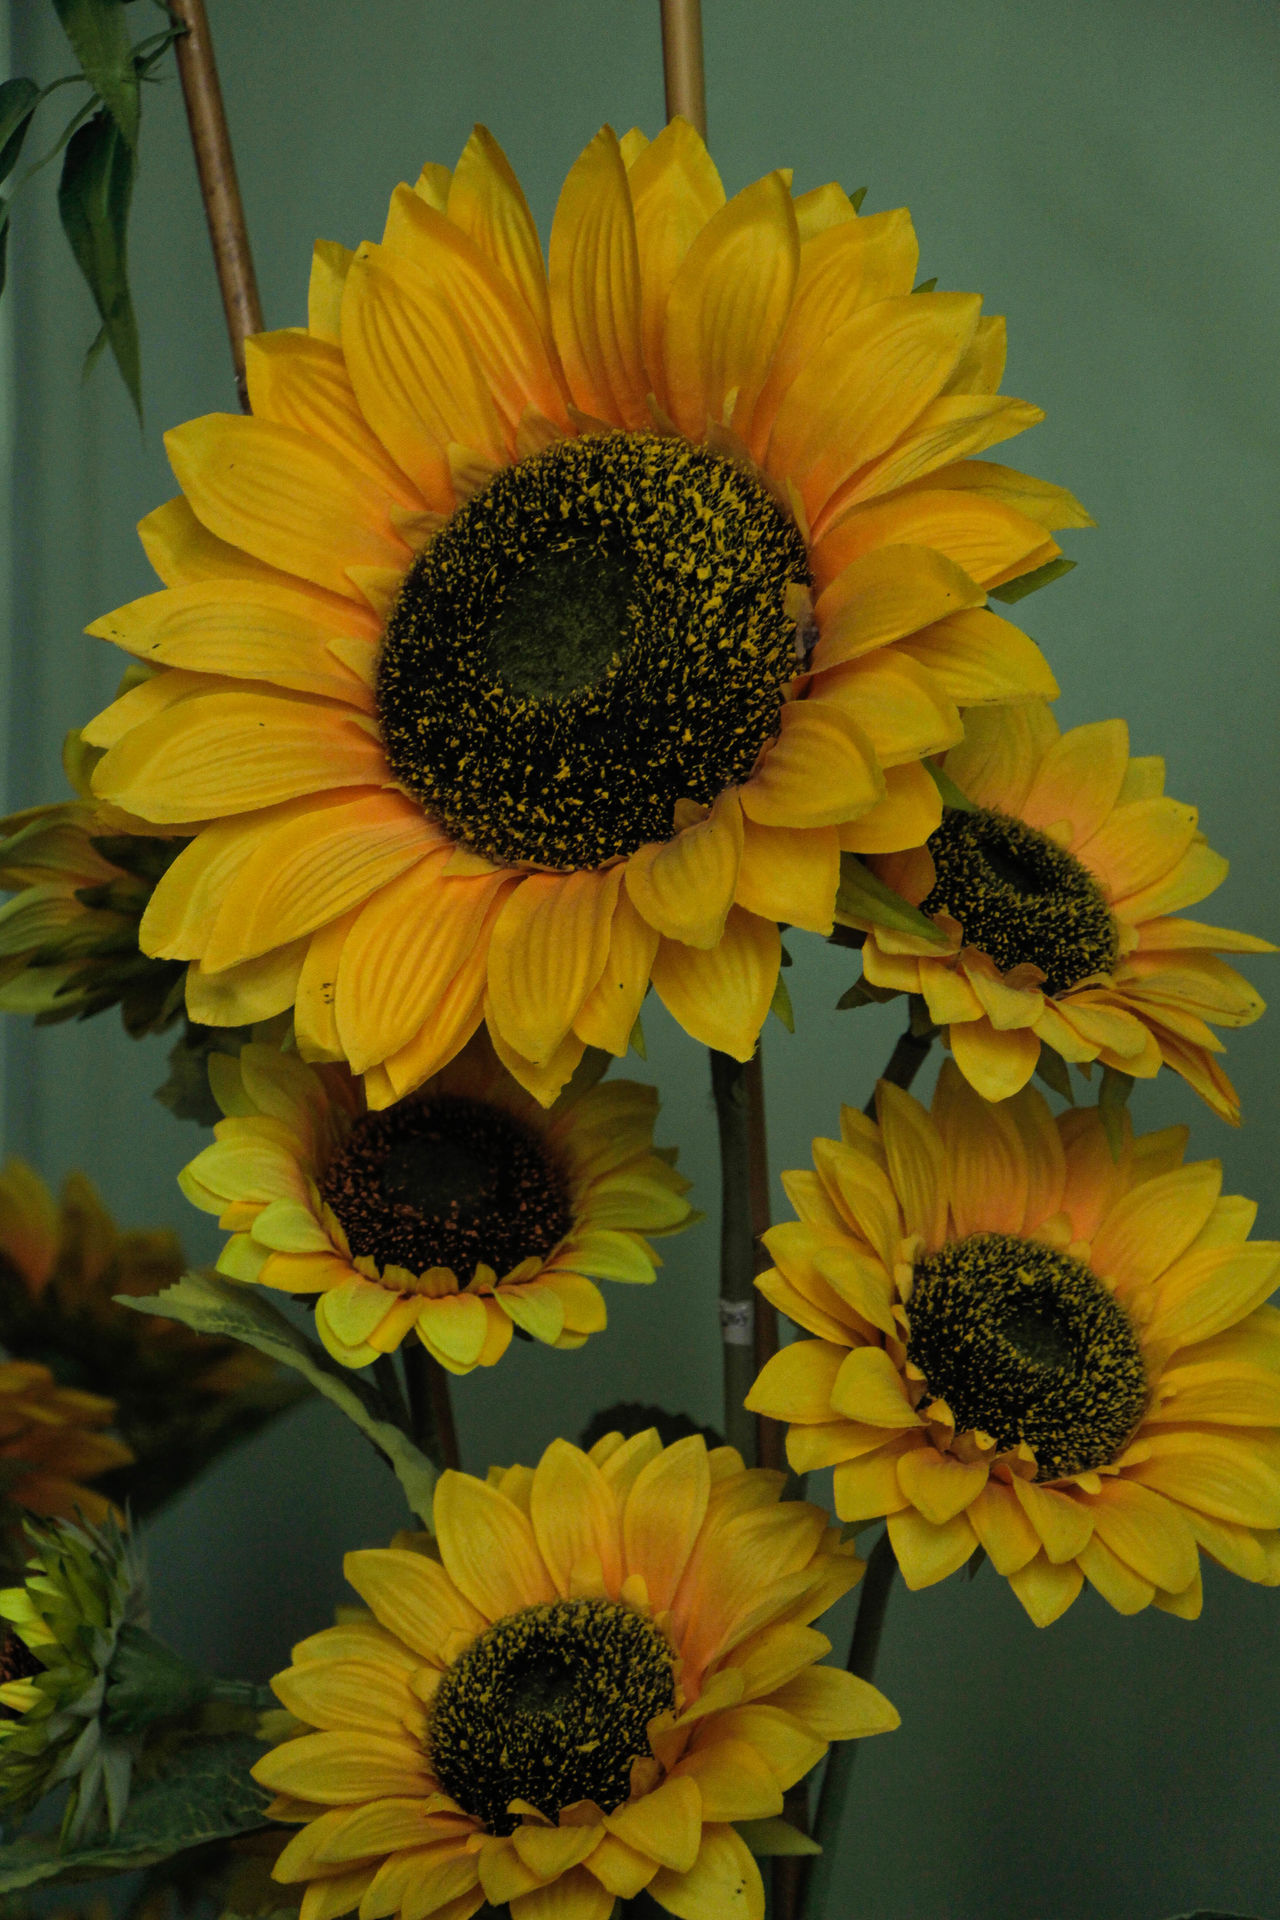 Artificial Artificial Flower Beauty In Nature Blooming Close-up Fake Flower Freshness Plant Sunflower Yellow